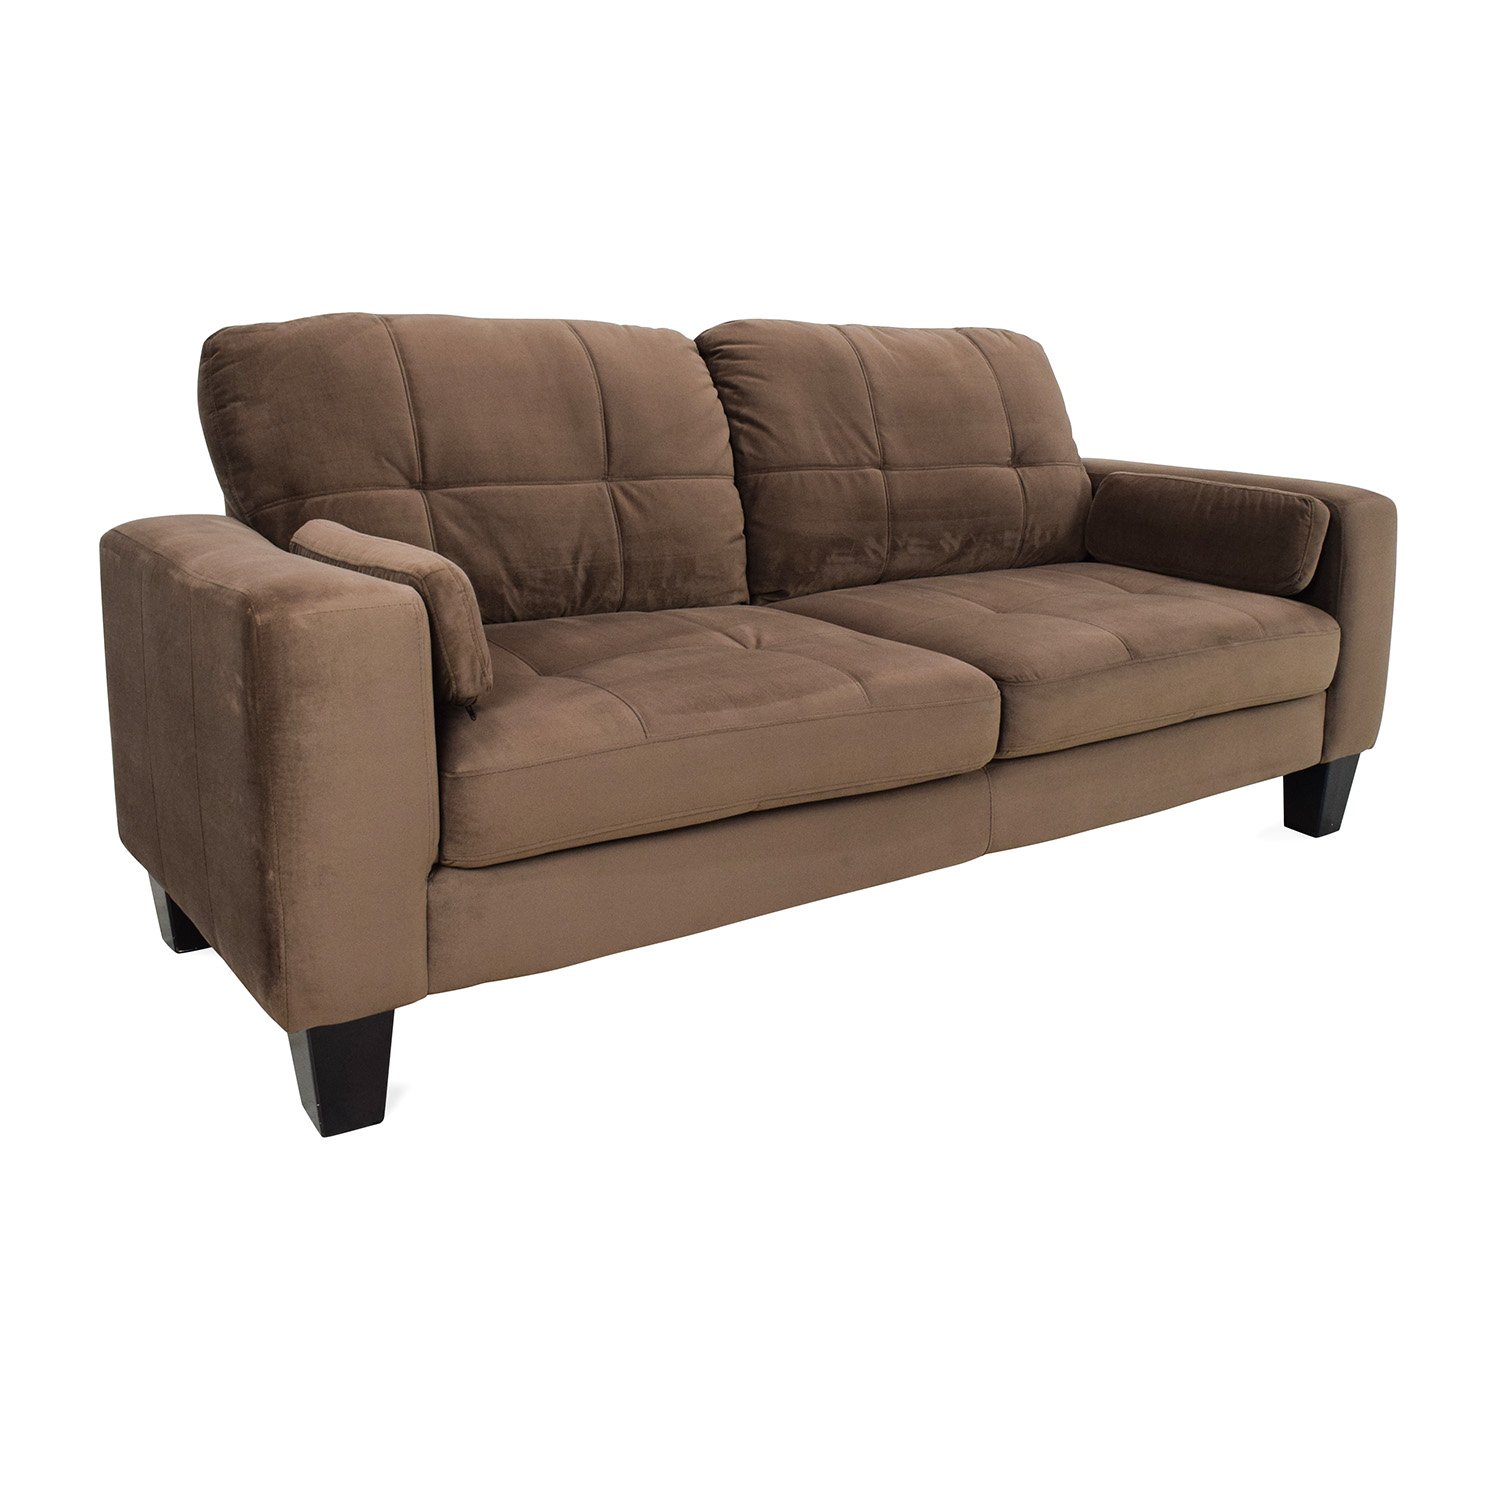 Jennifer convertibles sofa 48 off star furniture brown for Sectional sofa jennifer convertible